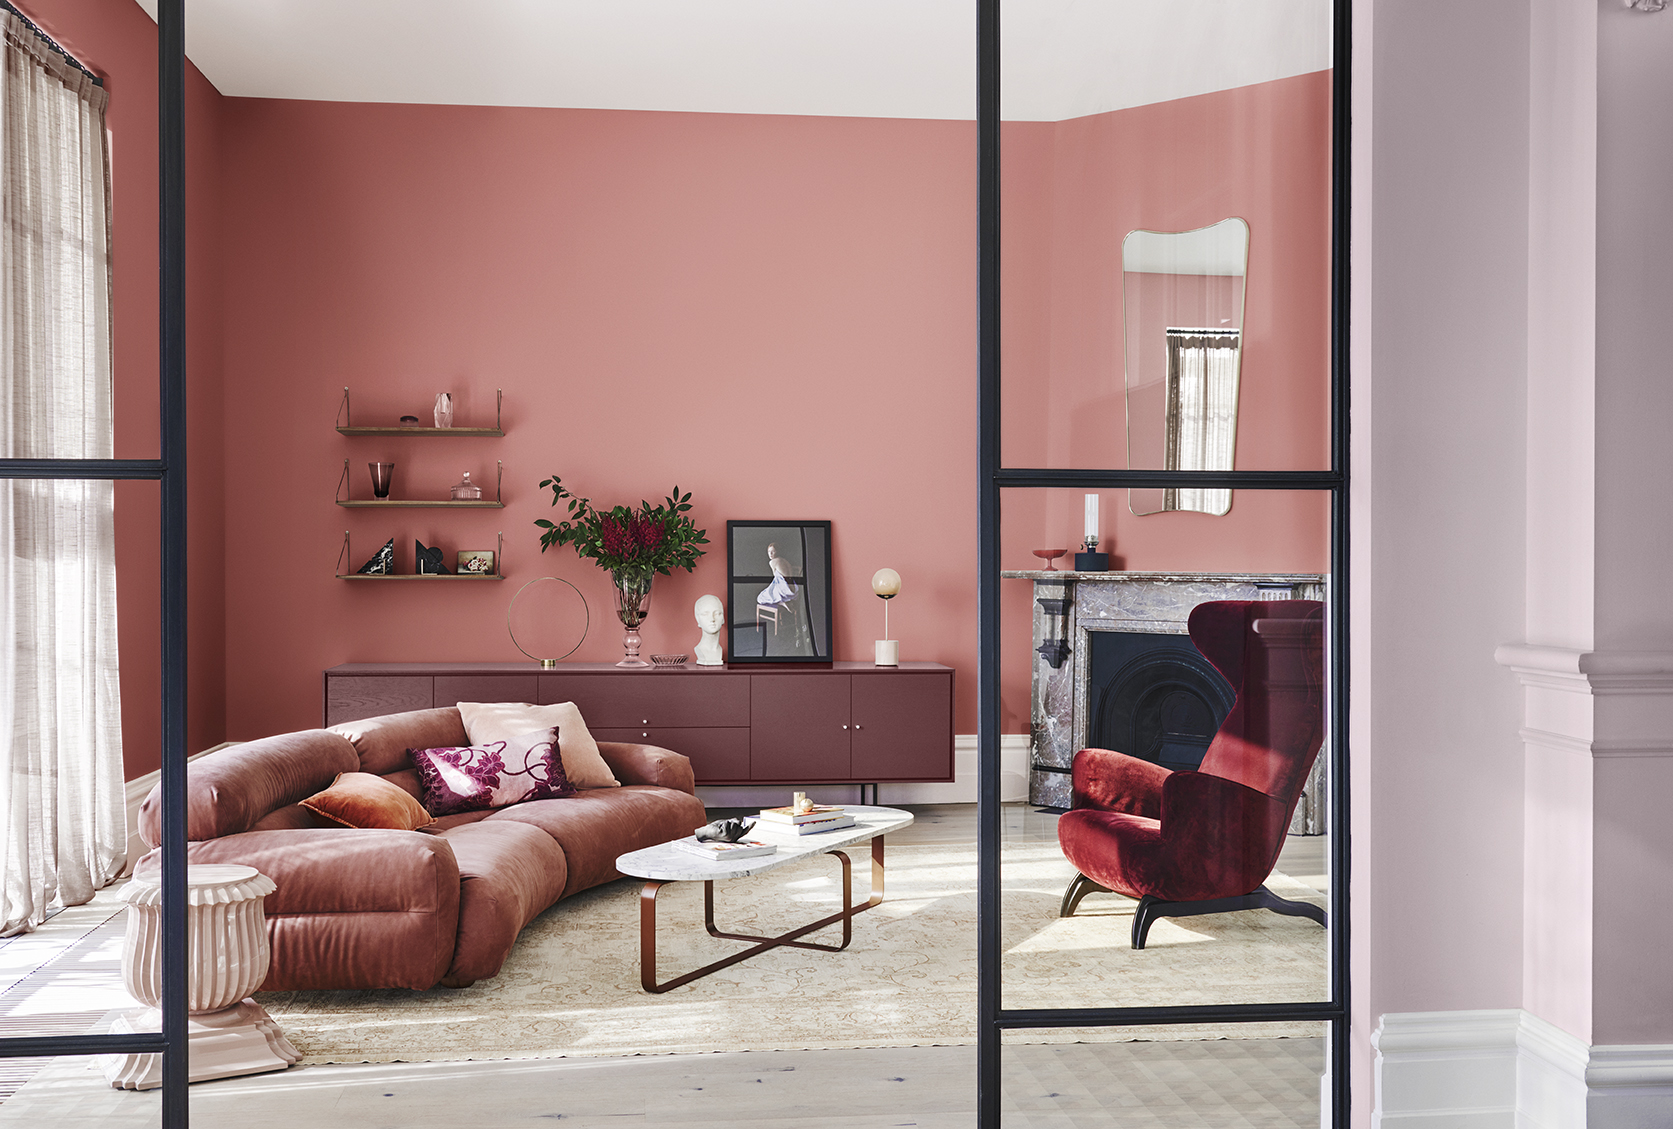 Legacy Palette Dulux Colour Forecast. Stylist Bree Leech. Photographer Lisa Cohen.Wall (rear) in Dulux Shepherd's Warning, console in Federation Brown, wall (right) in Pink Linen Half, ceiling & trims in St Clair quarter. Artwork:Orphelia Ritual One art print, Figgoscope Curates